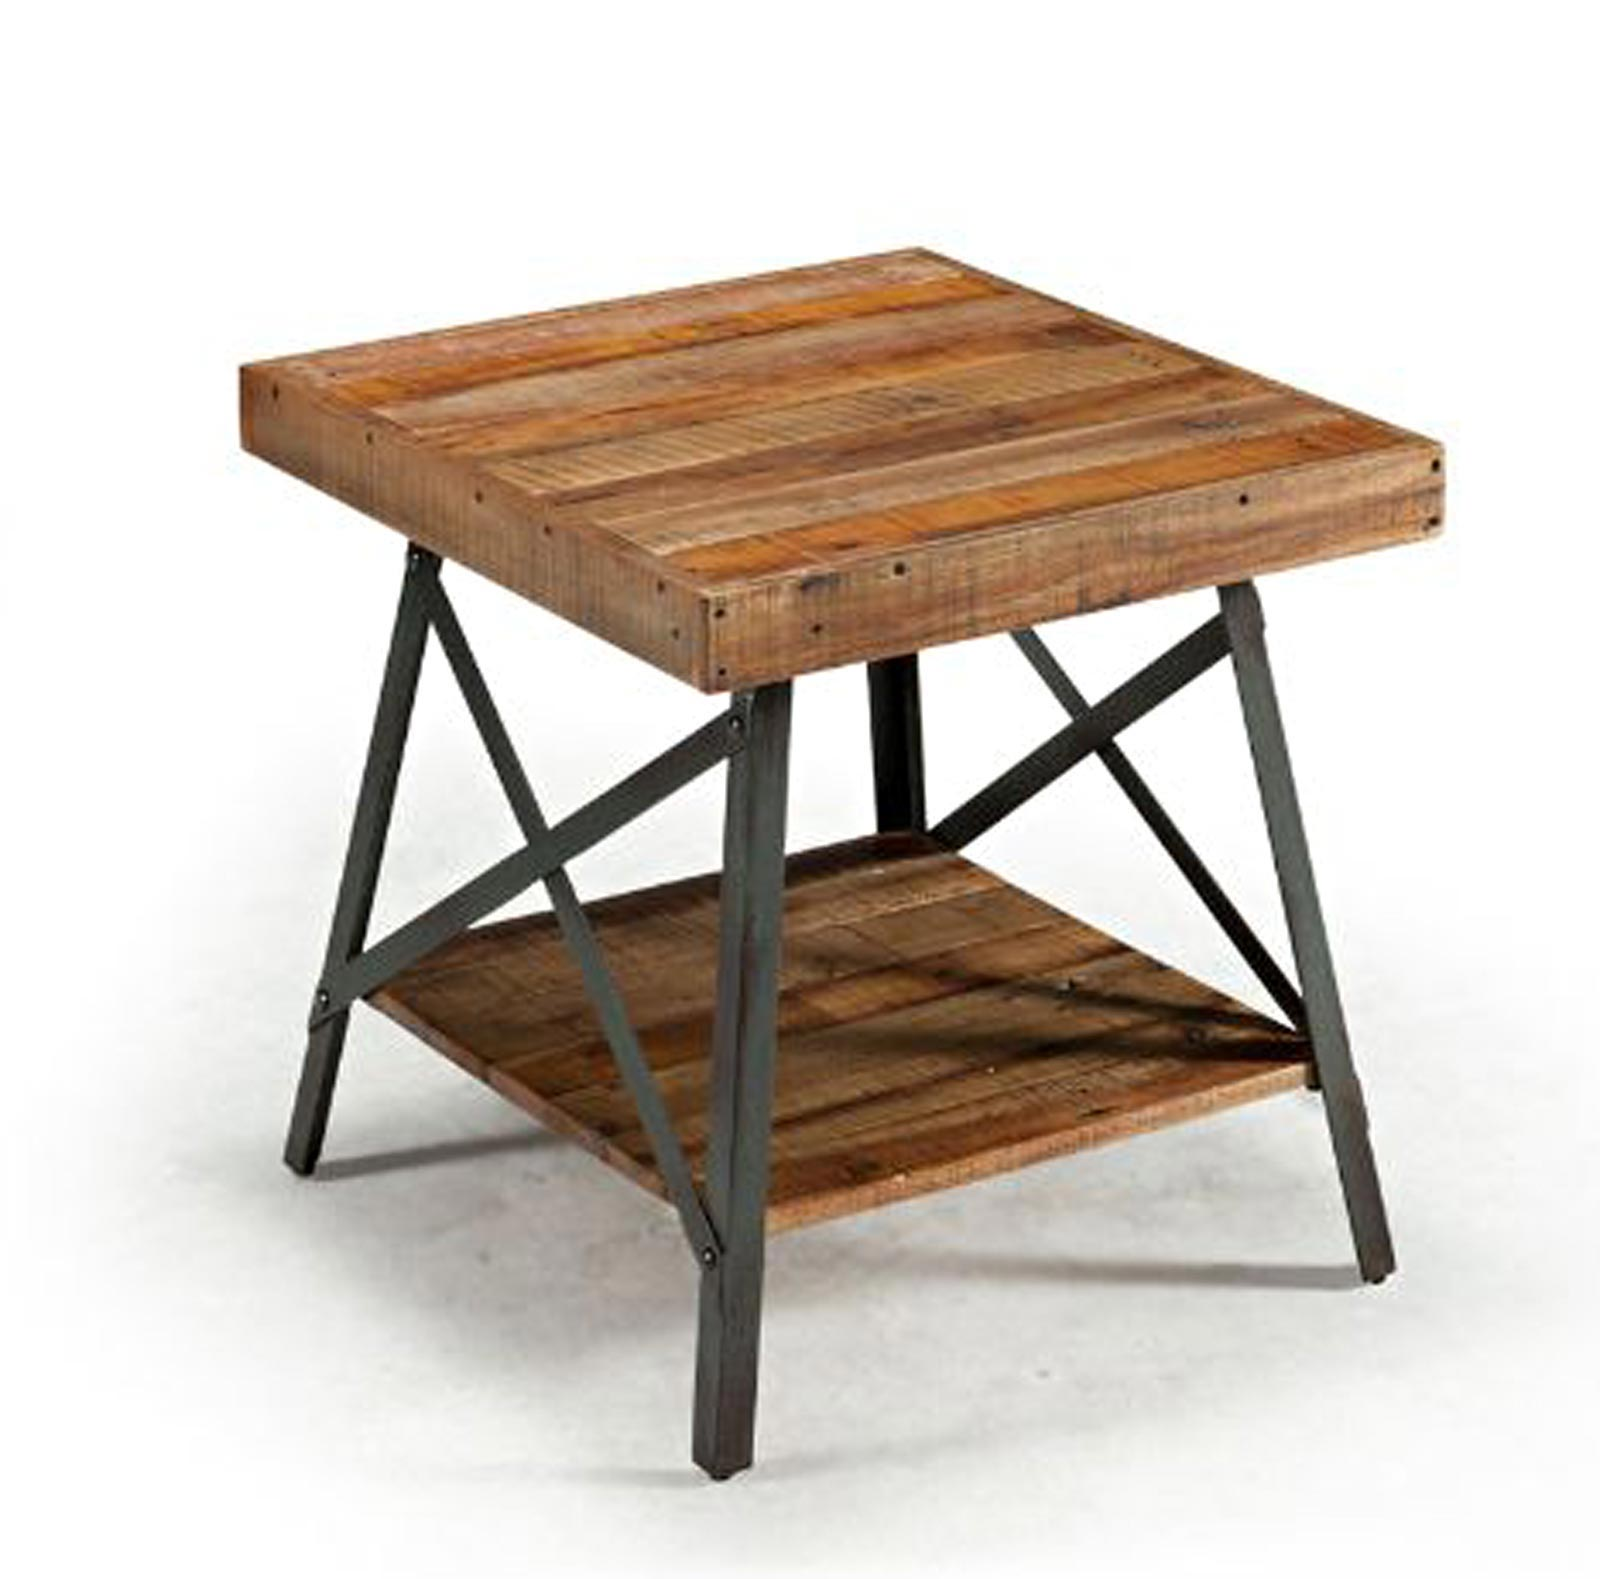 metal and wood end tables home design ideas tures rustic side table wooden reclaimed diy industrial iron accent plans dyi berwyn brown threshold glass ashley furniture chairside